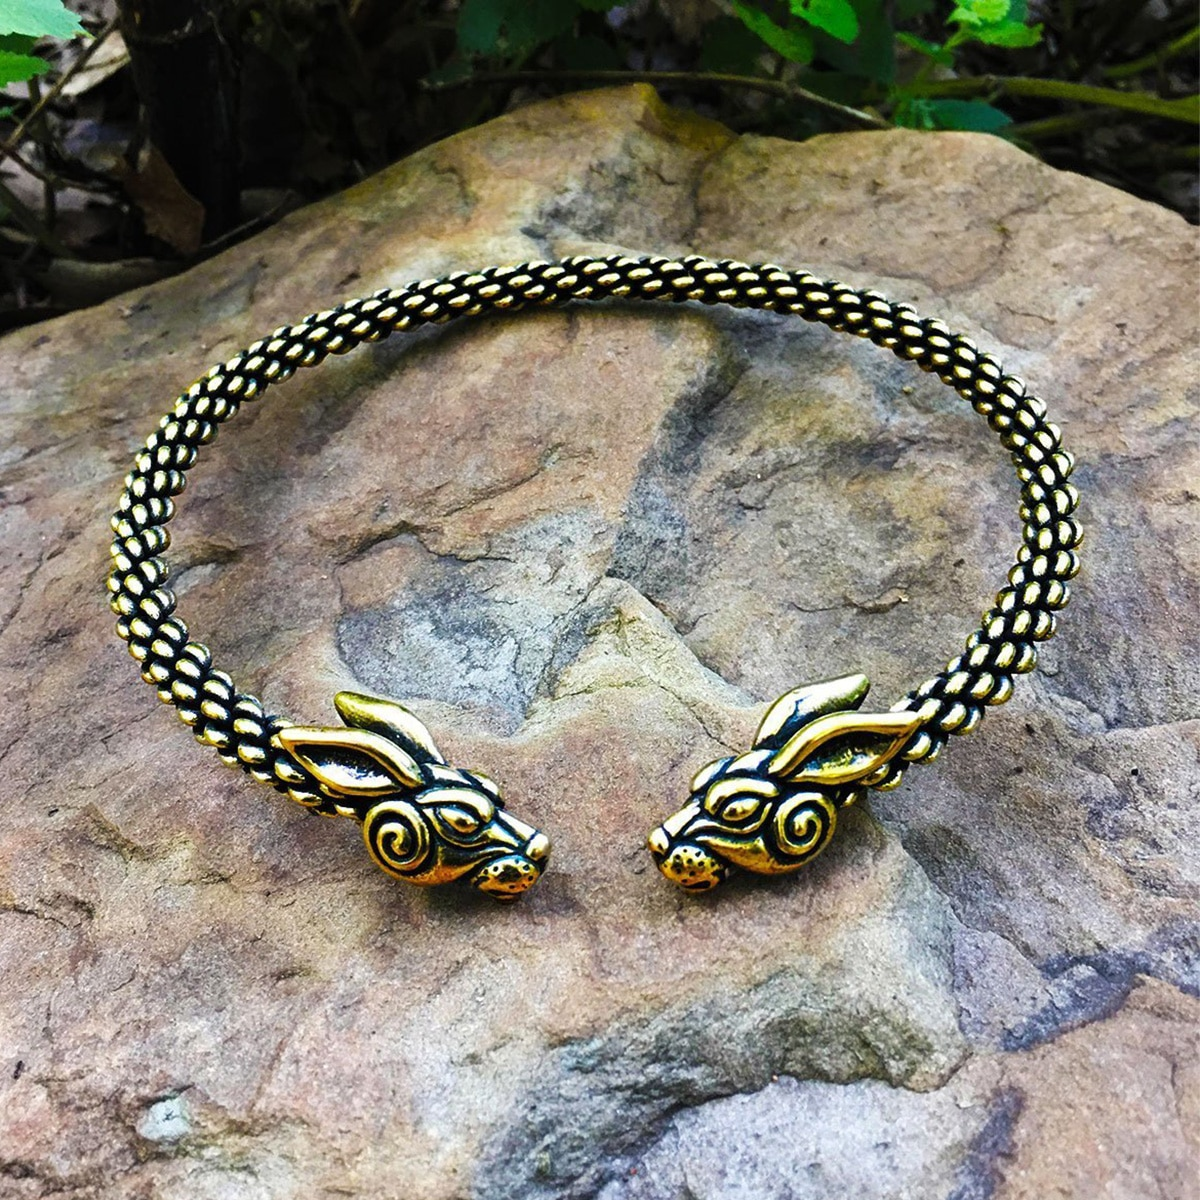 A rabbit torc necklace from the Celtic Croft